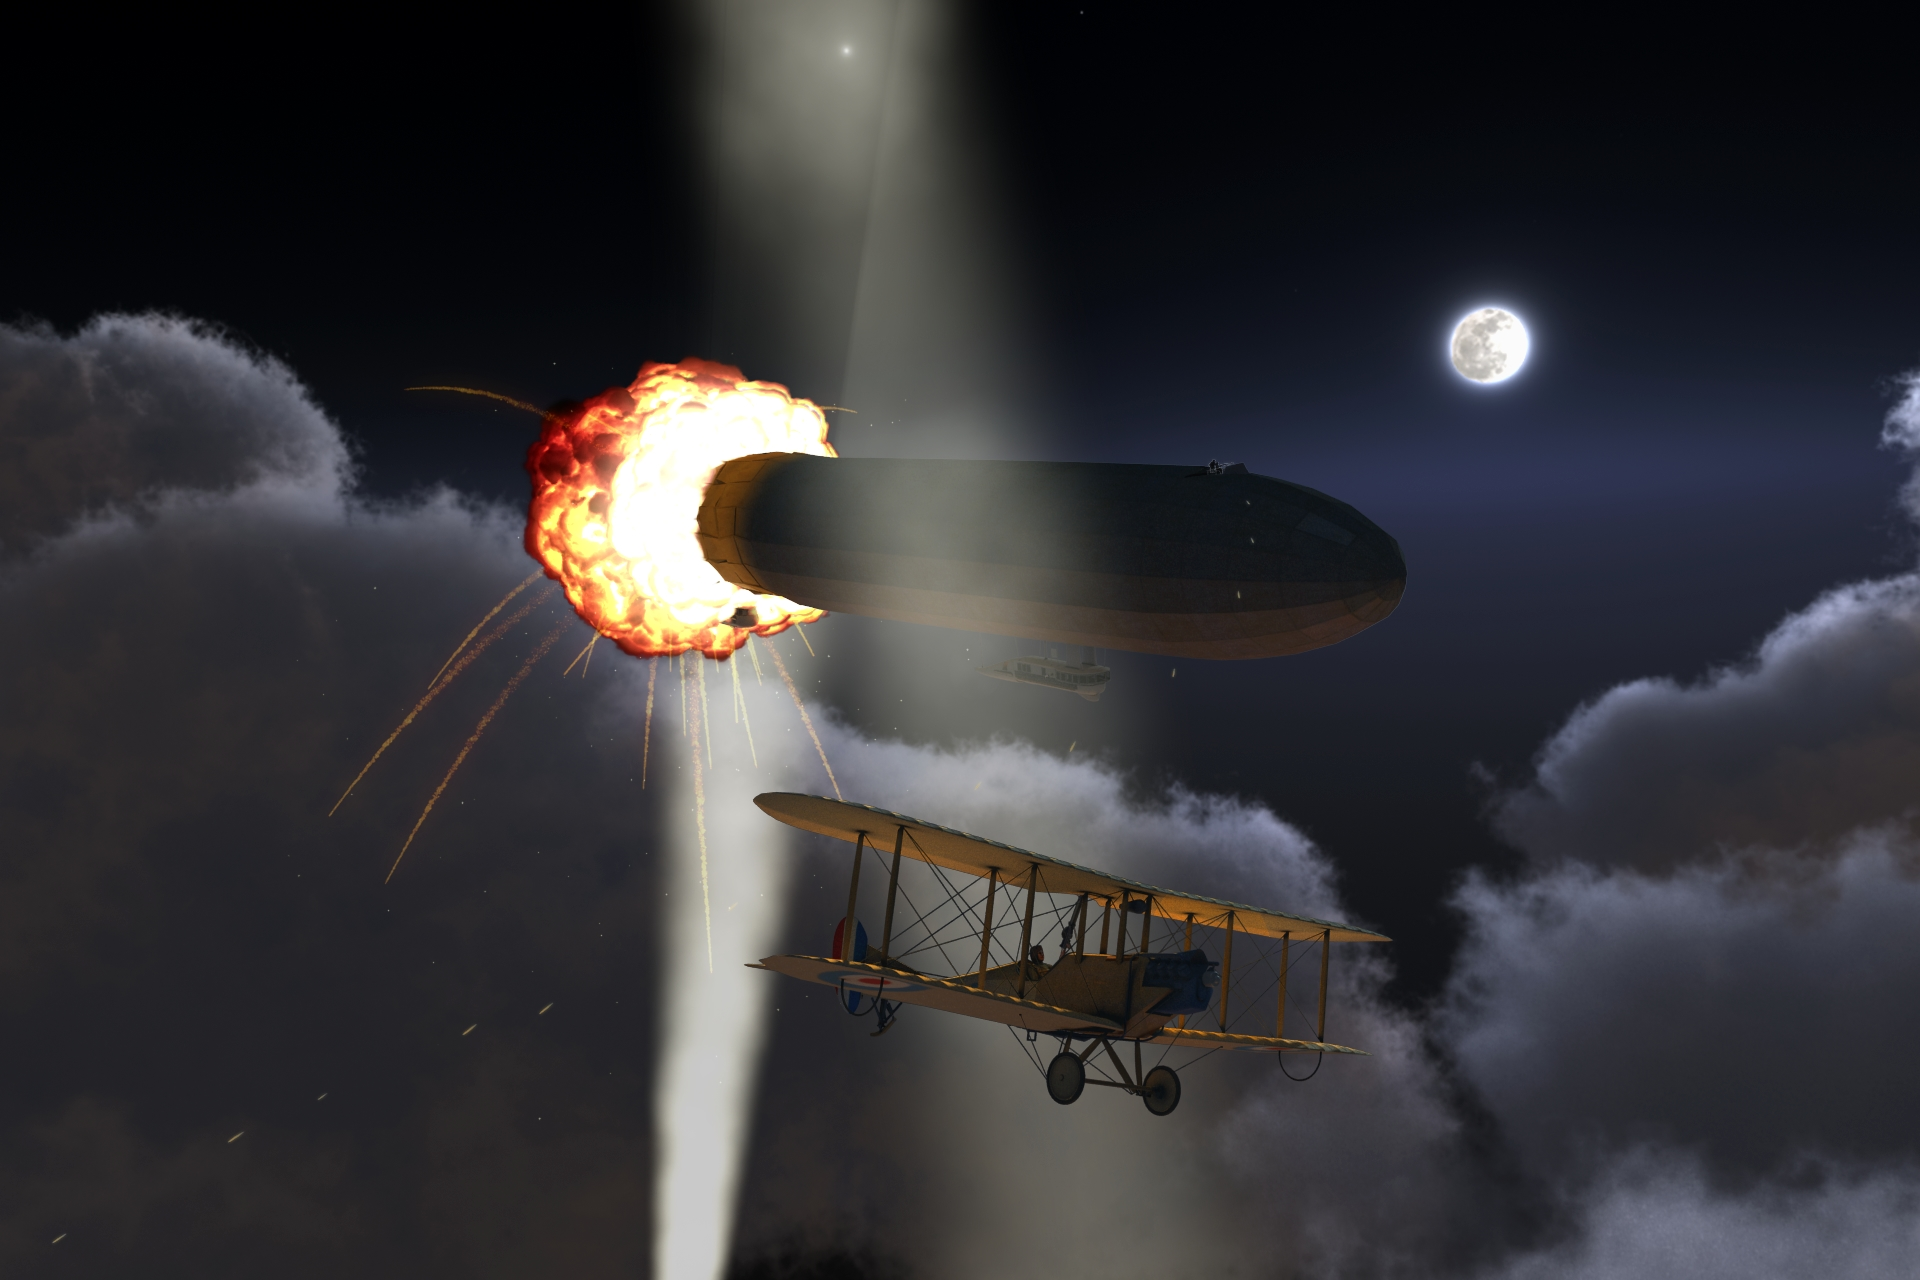 Zeppelin in Flames